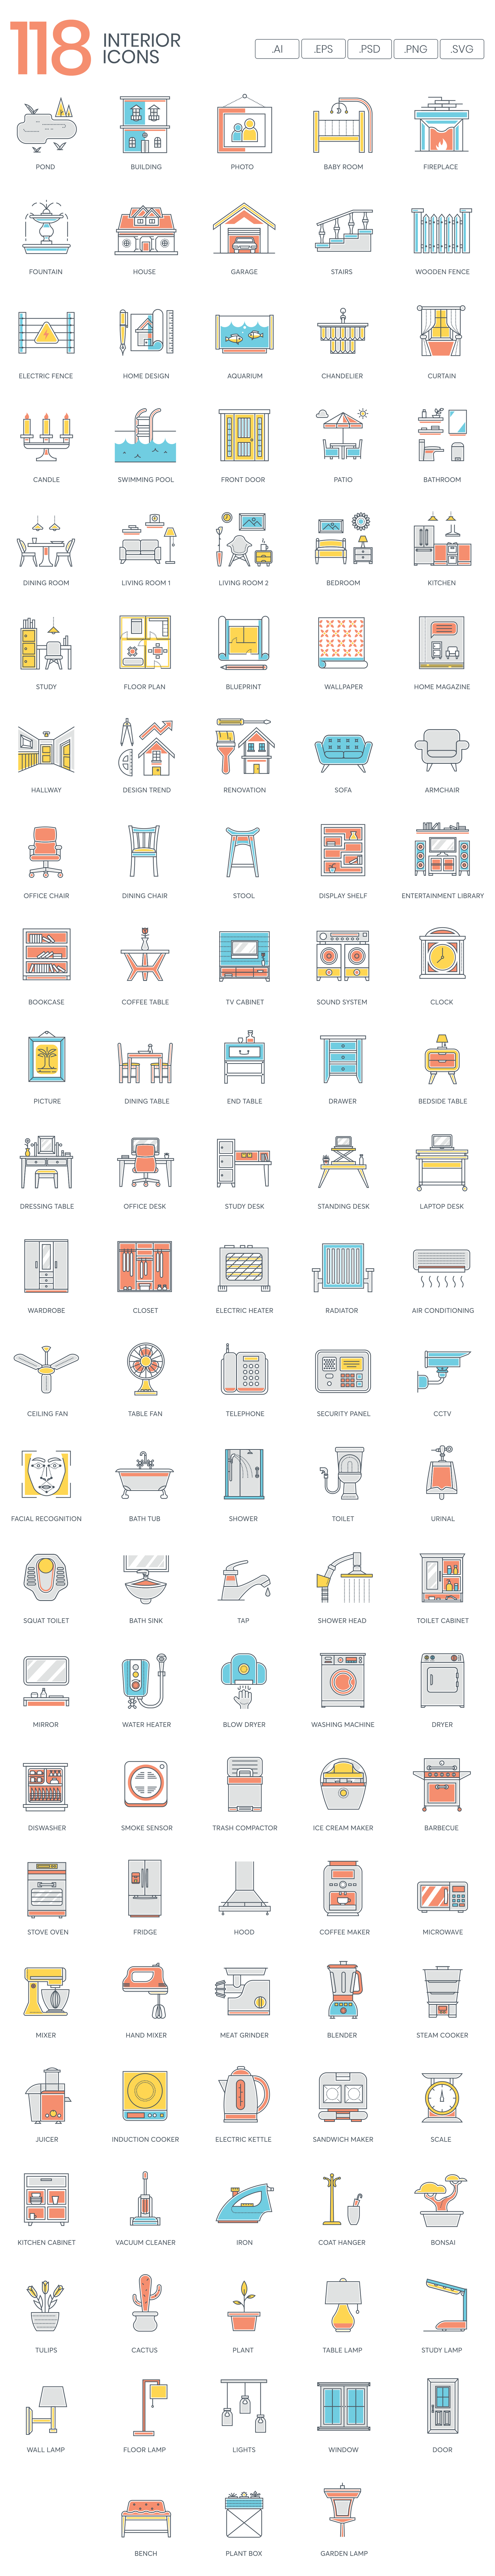 Interior Vector Icons Preview Image